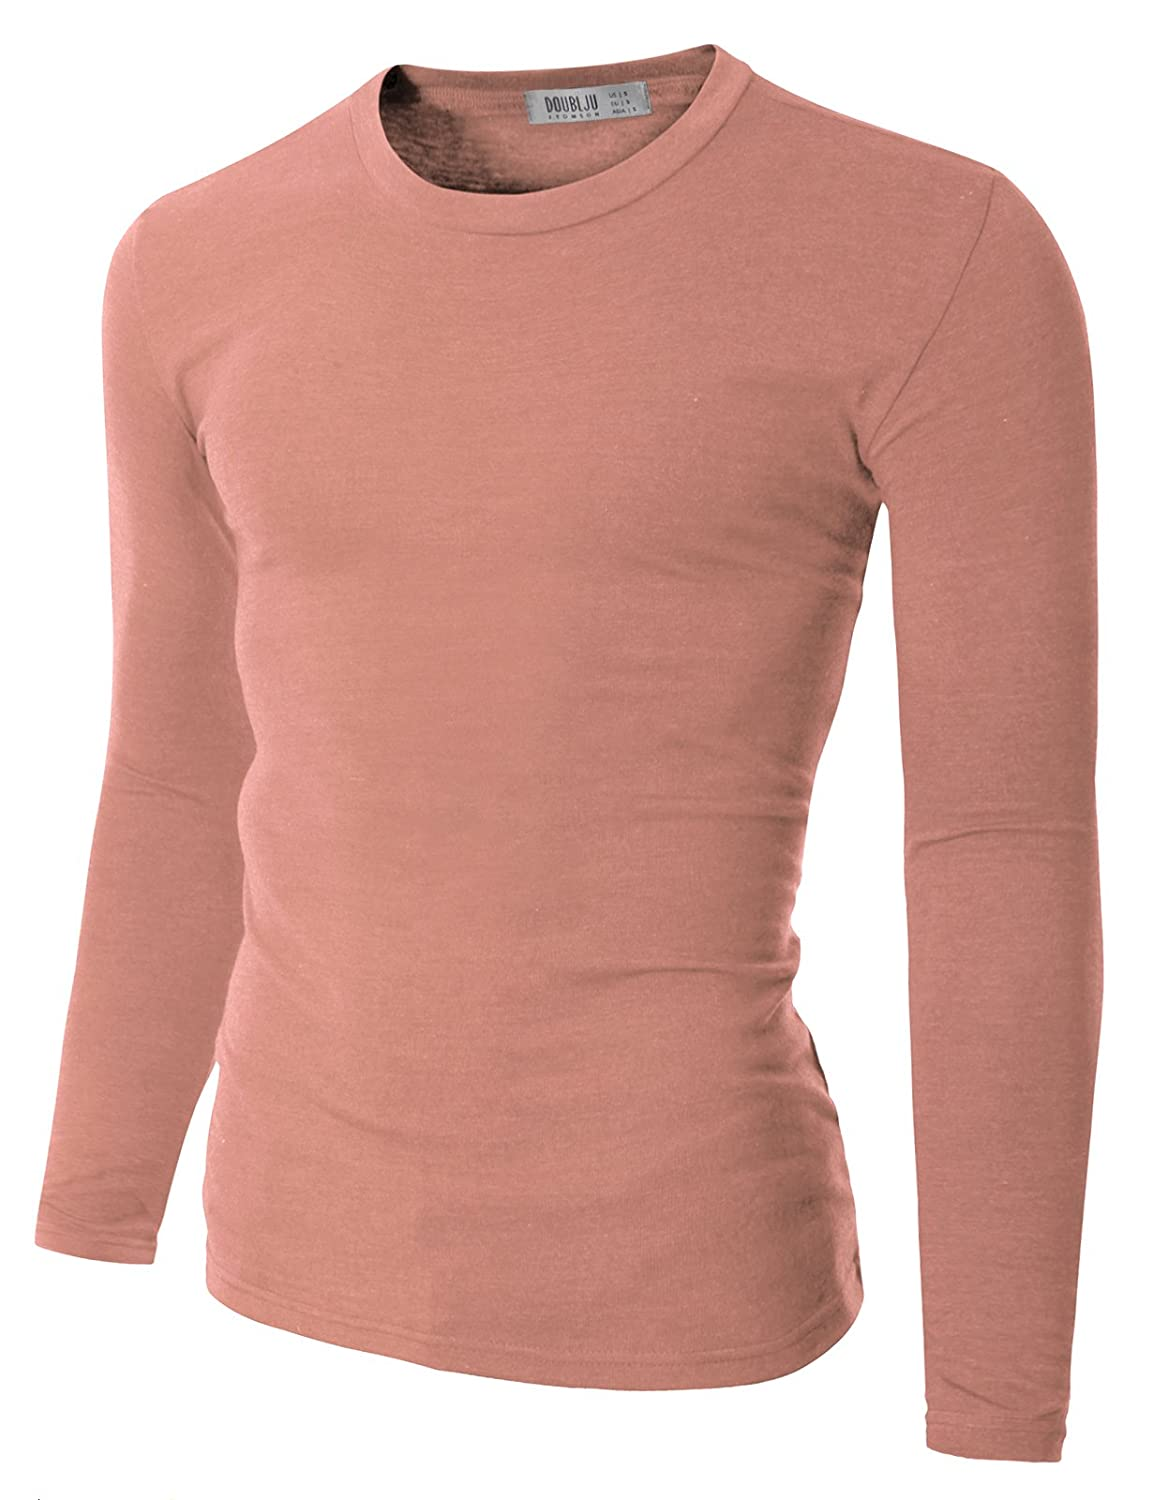 c0c8f73ffd48f8 This t-shirt is exceptionally soft and comfortable. Designed with a sharp crew  neck design and sleek ...